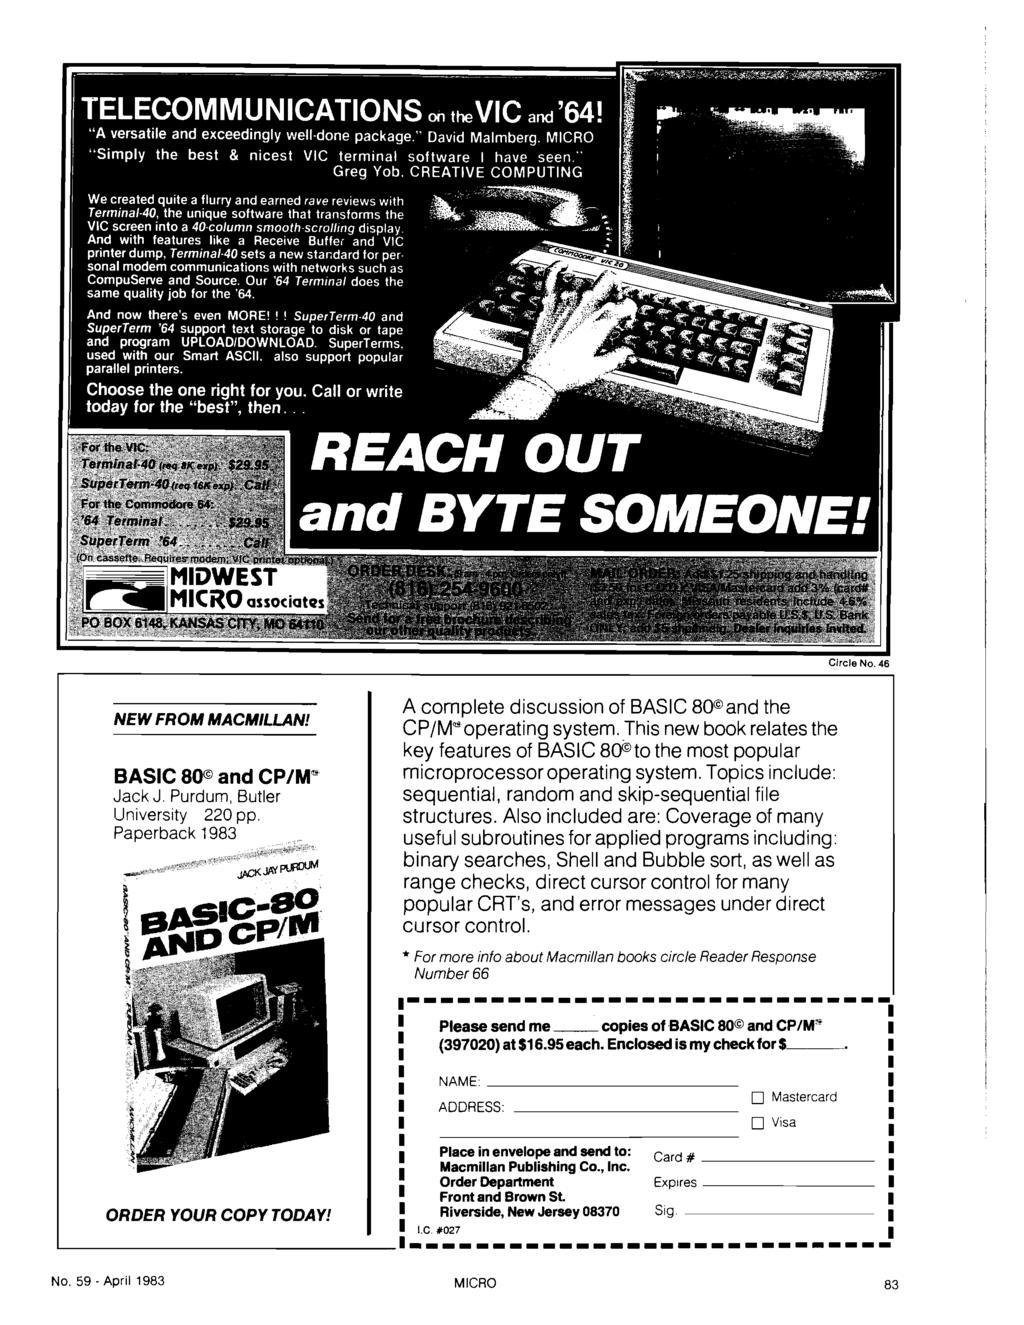 Advancing Computer Knowledge Pdf Commodore 64 Rev A Motherboard Schematics From 1982 Telecommunications On Vic And Versatile Exceedingly Well Done Package